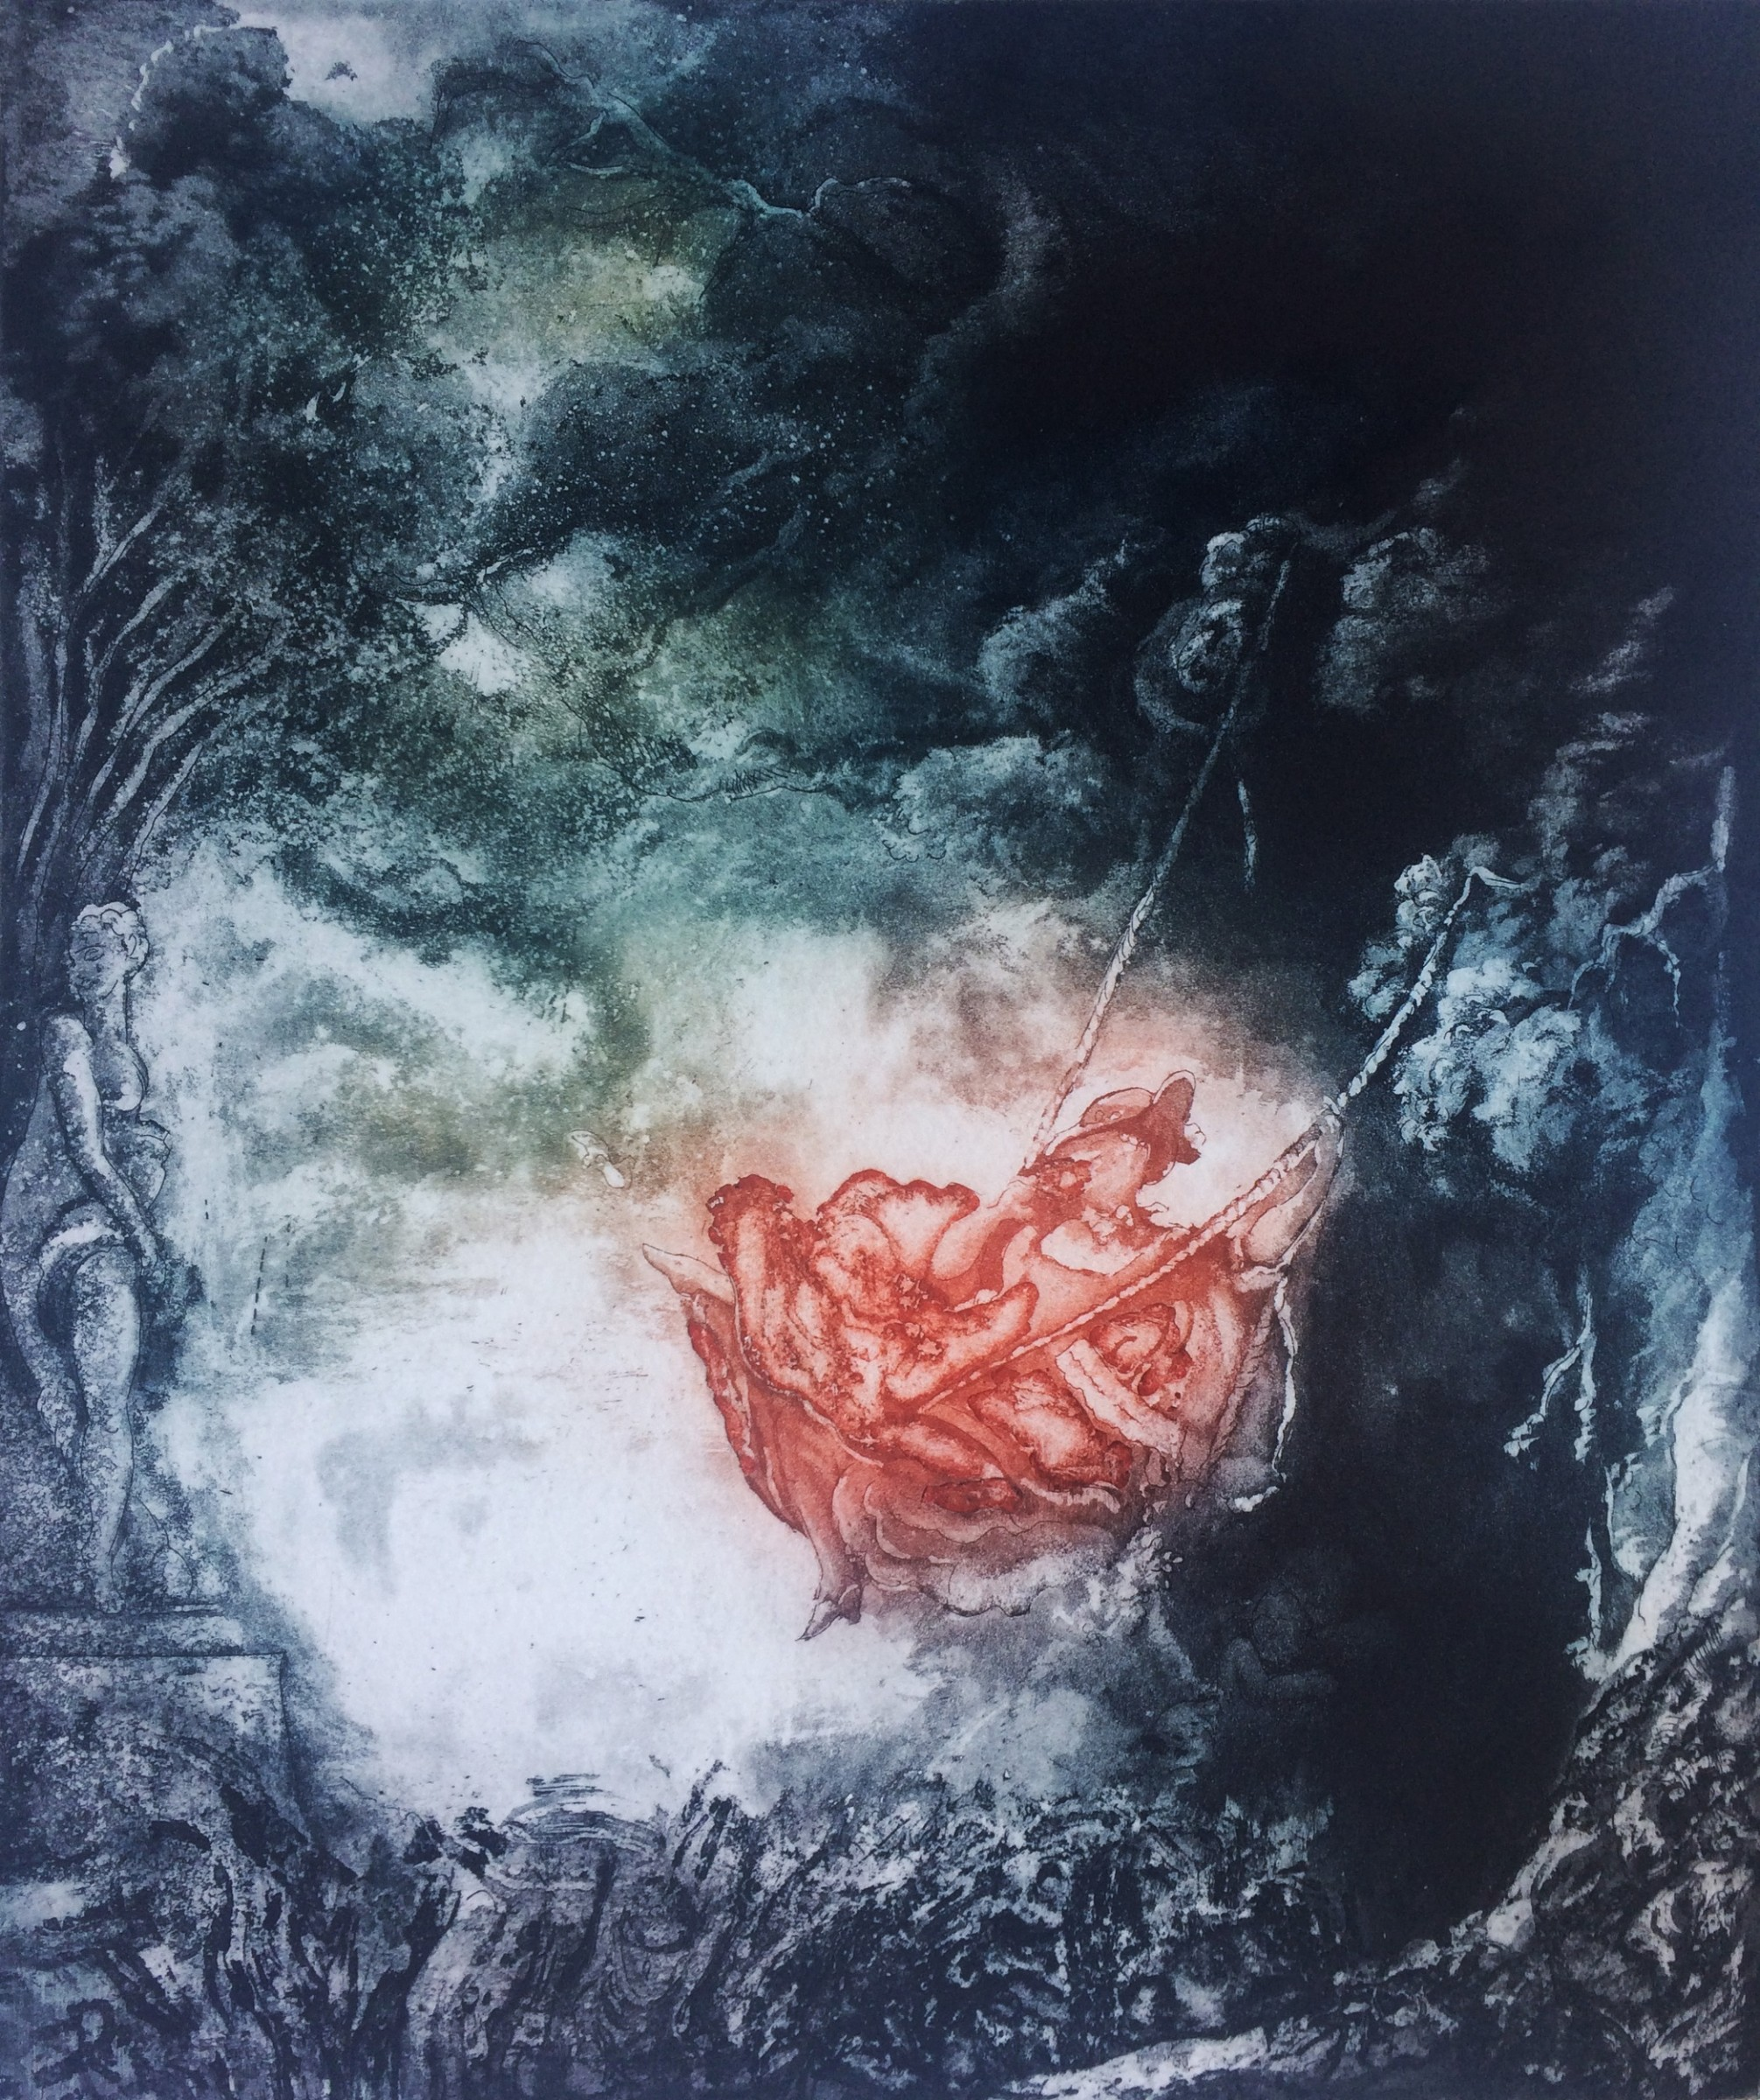 "<span class=""link fancybox-details-link""><a href=""/exhibitions/17/works/image_standalone673/"">View Detail Page</a></span><p><strong>Beata Bialek</strong></p><p>Mirage, after Fragonard</p><p>etching and aquatint, ed of 10</p><p>56 x 46cm</p><p>£380 framed</p><p>£300 unframed</p>"